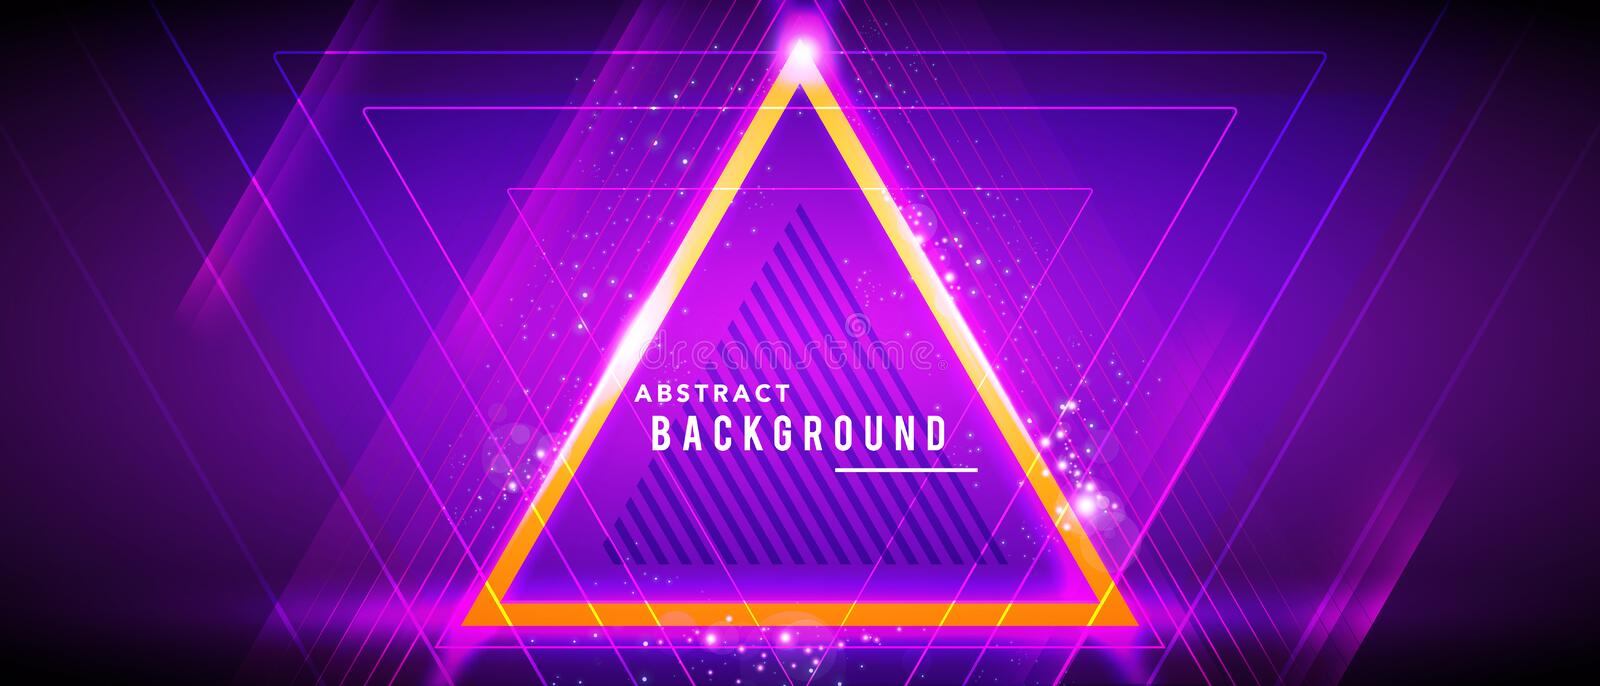 Vector illustration neon glowing techno lines, hi-tech futuristic abstract background template with triangle shapes stock illustration